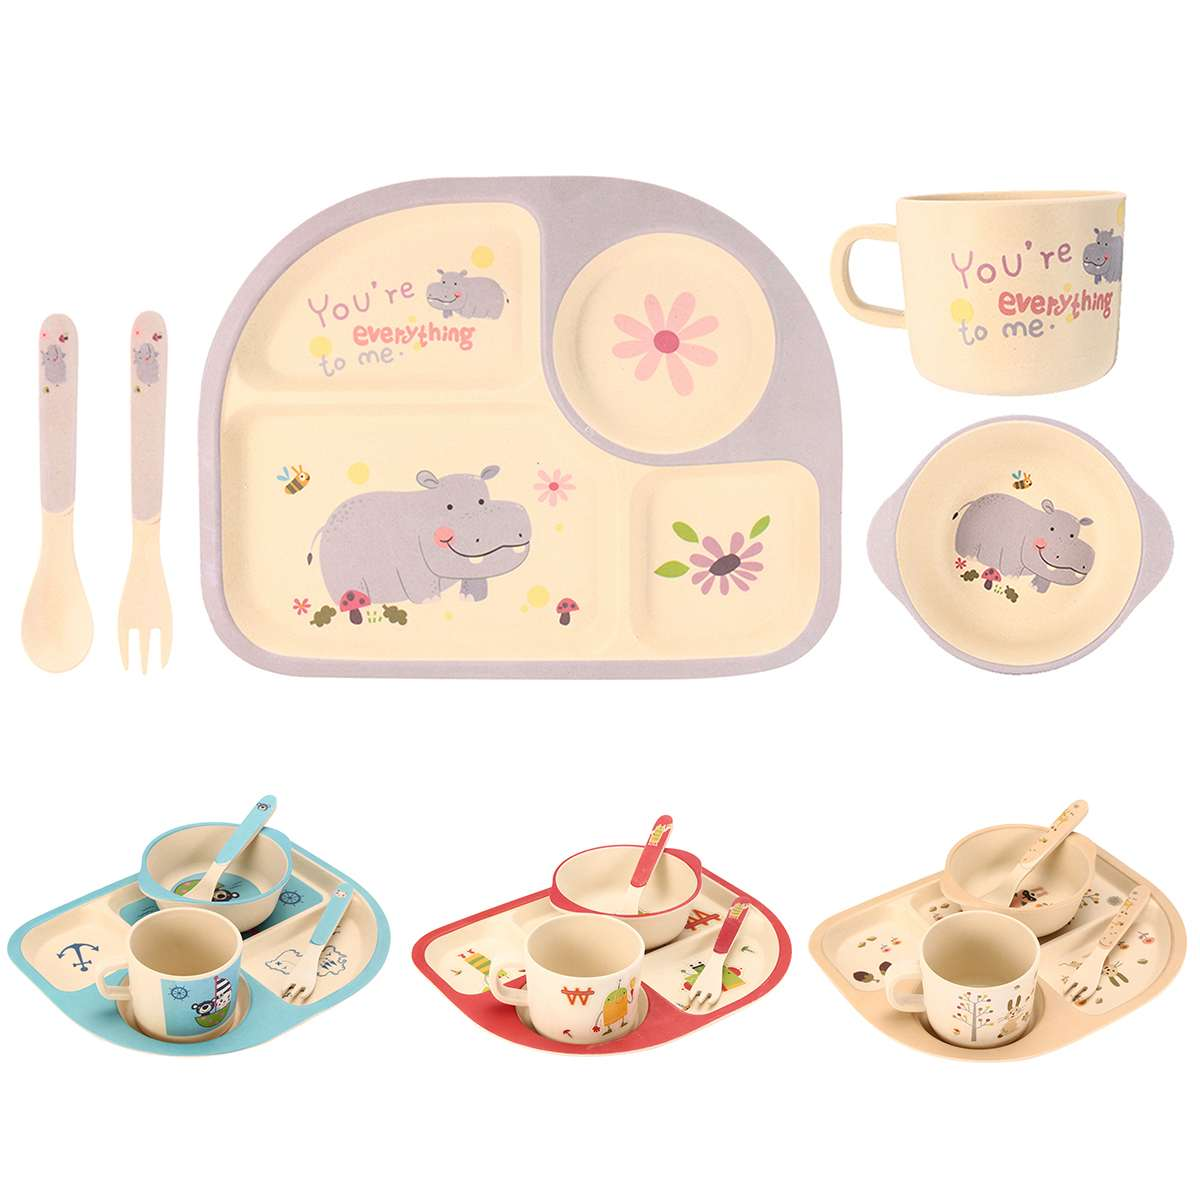 Baby Feeding Bowl Plate Dishes Fork Spoon Cup Children Tableware Bamboo Fiber Cartoon Separation Feeding Plate 4 Colors 5Pcs/SetBaby Feeding Bowl Plate Dishes Fork Spoon Cup Children Tableware Bamboo Fiber Cartoon Separation Feeding Plate 4 Colors 5Pcs/Set